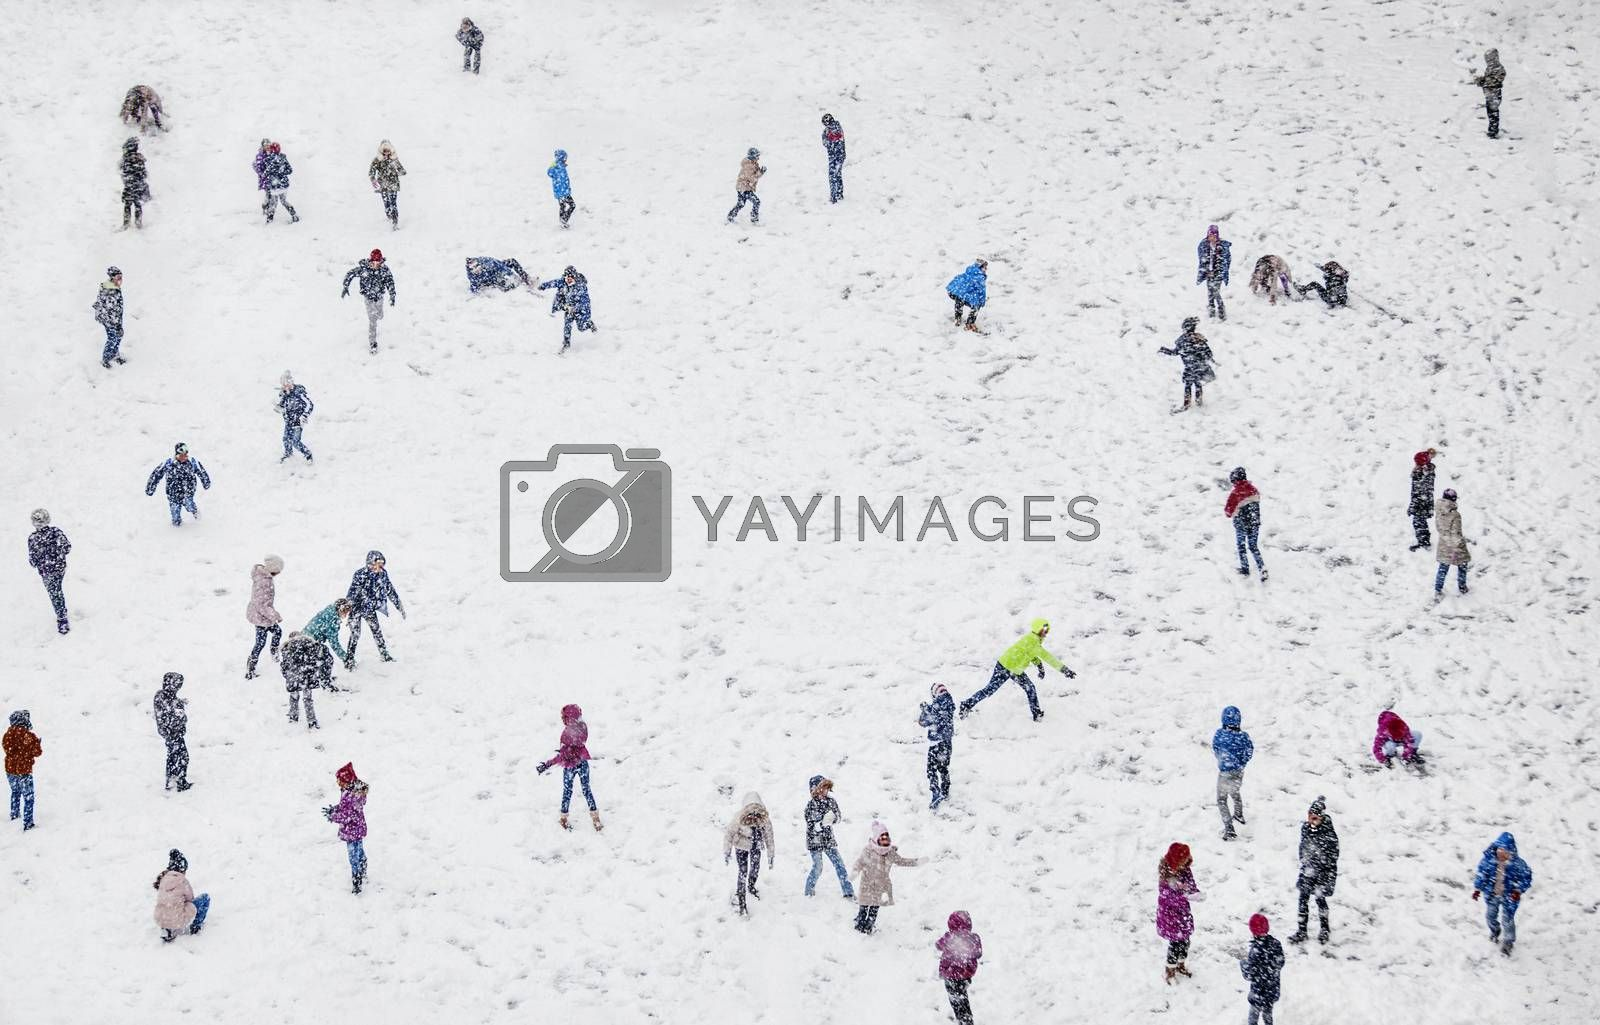 A field during winter, full of playing with the snow children, blurred faces.